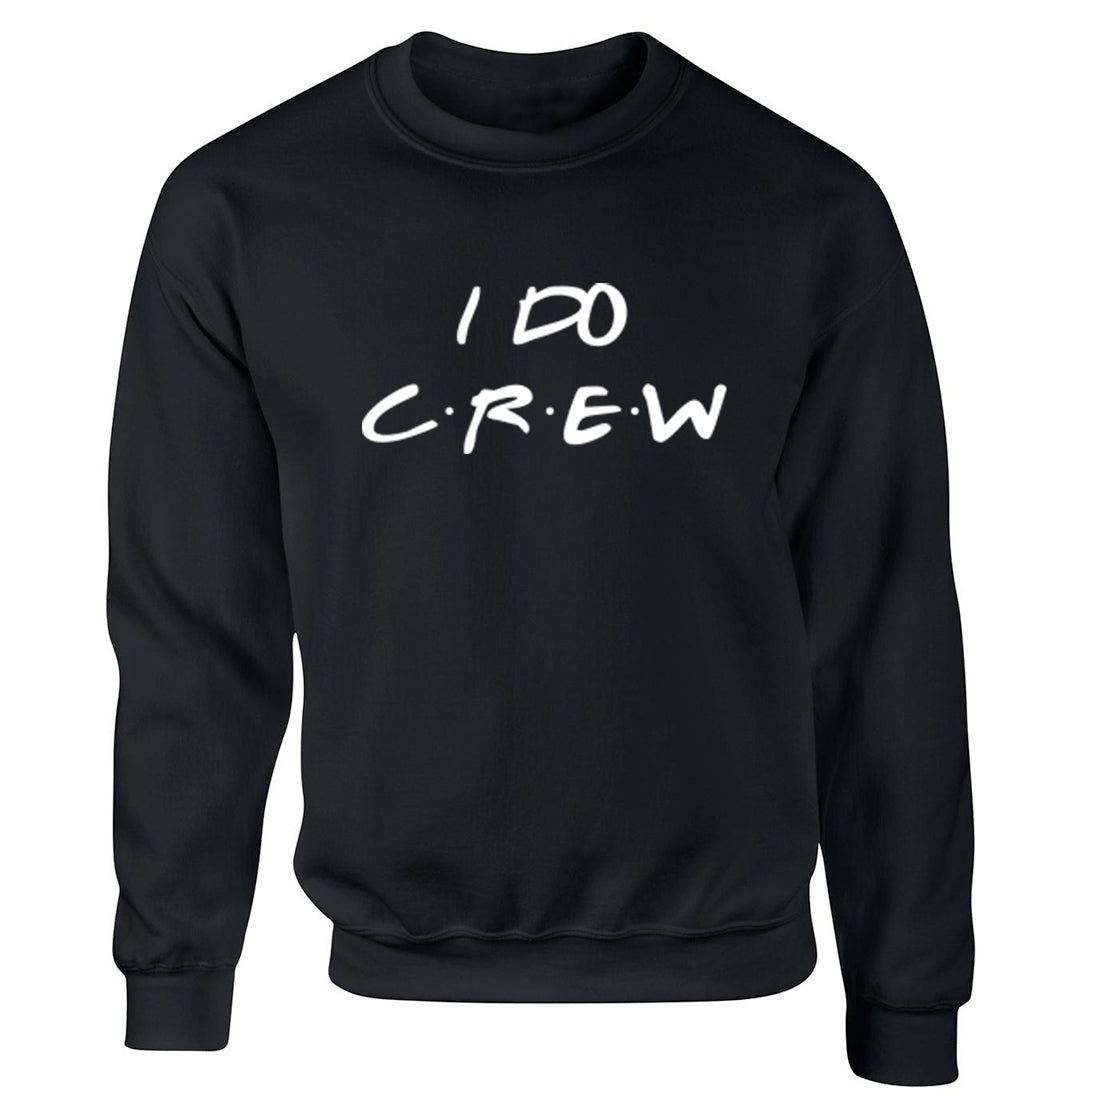 I Do Crew Childrens Ages 3/4-12/14 Unisex Jumper K2381 - Illustrated Identity Ltd.